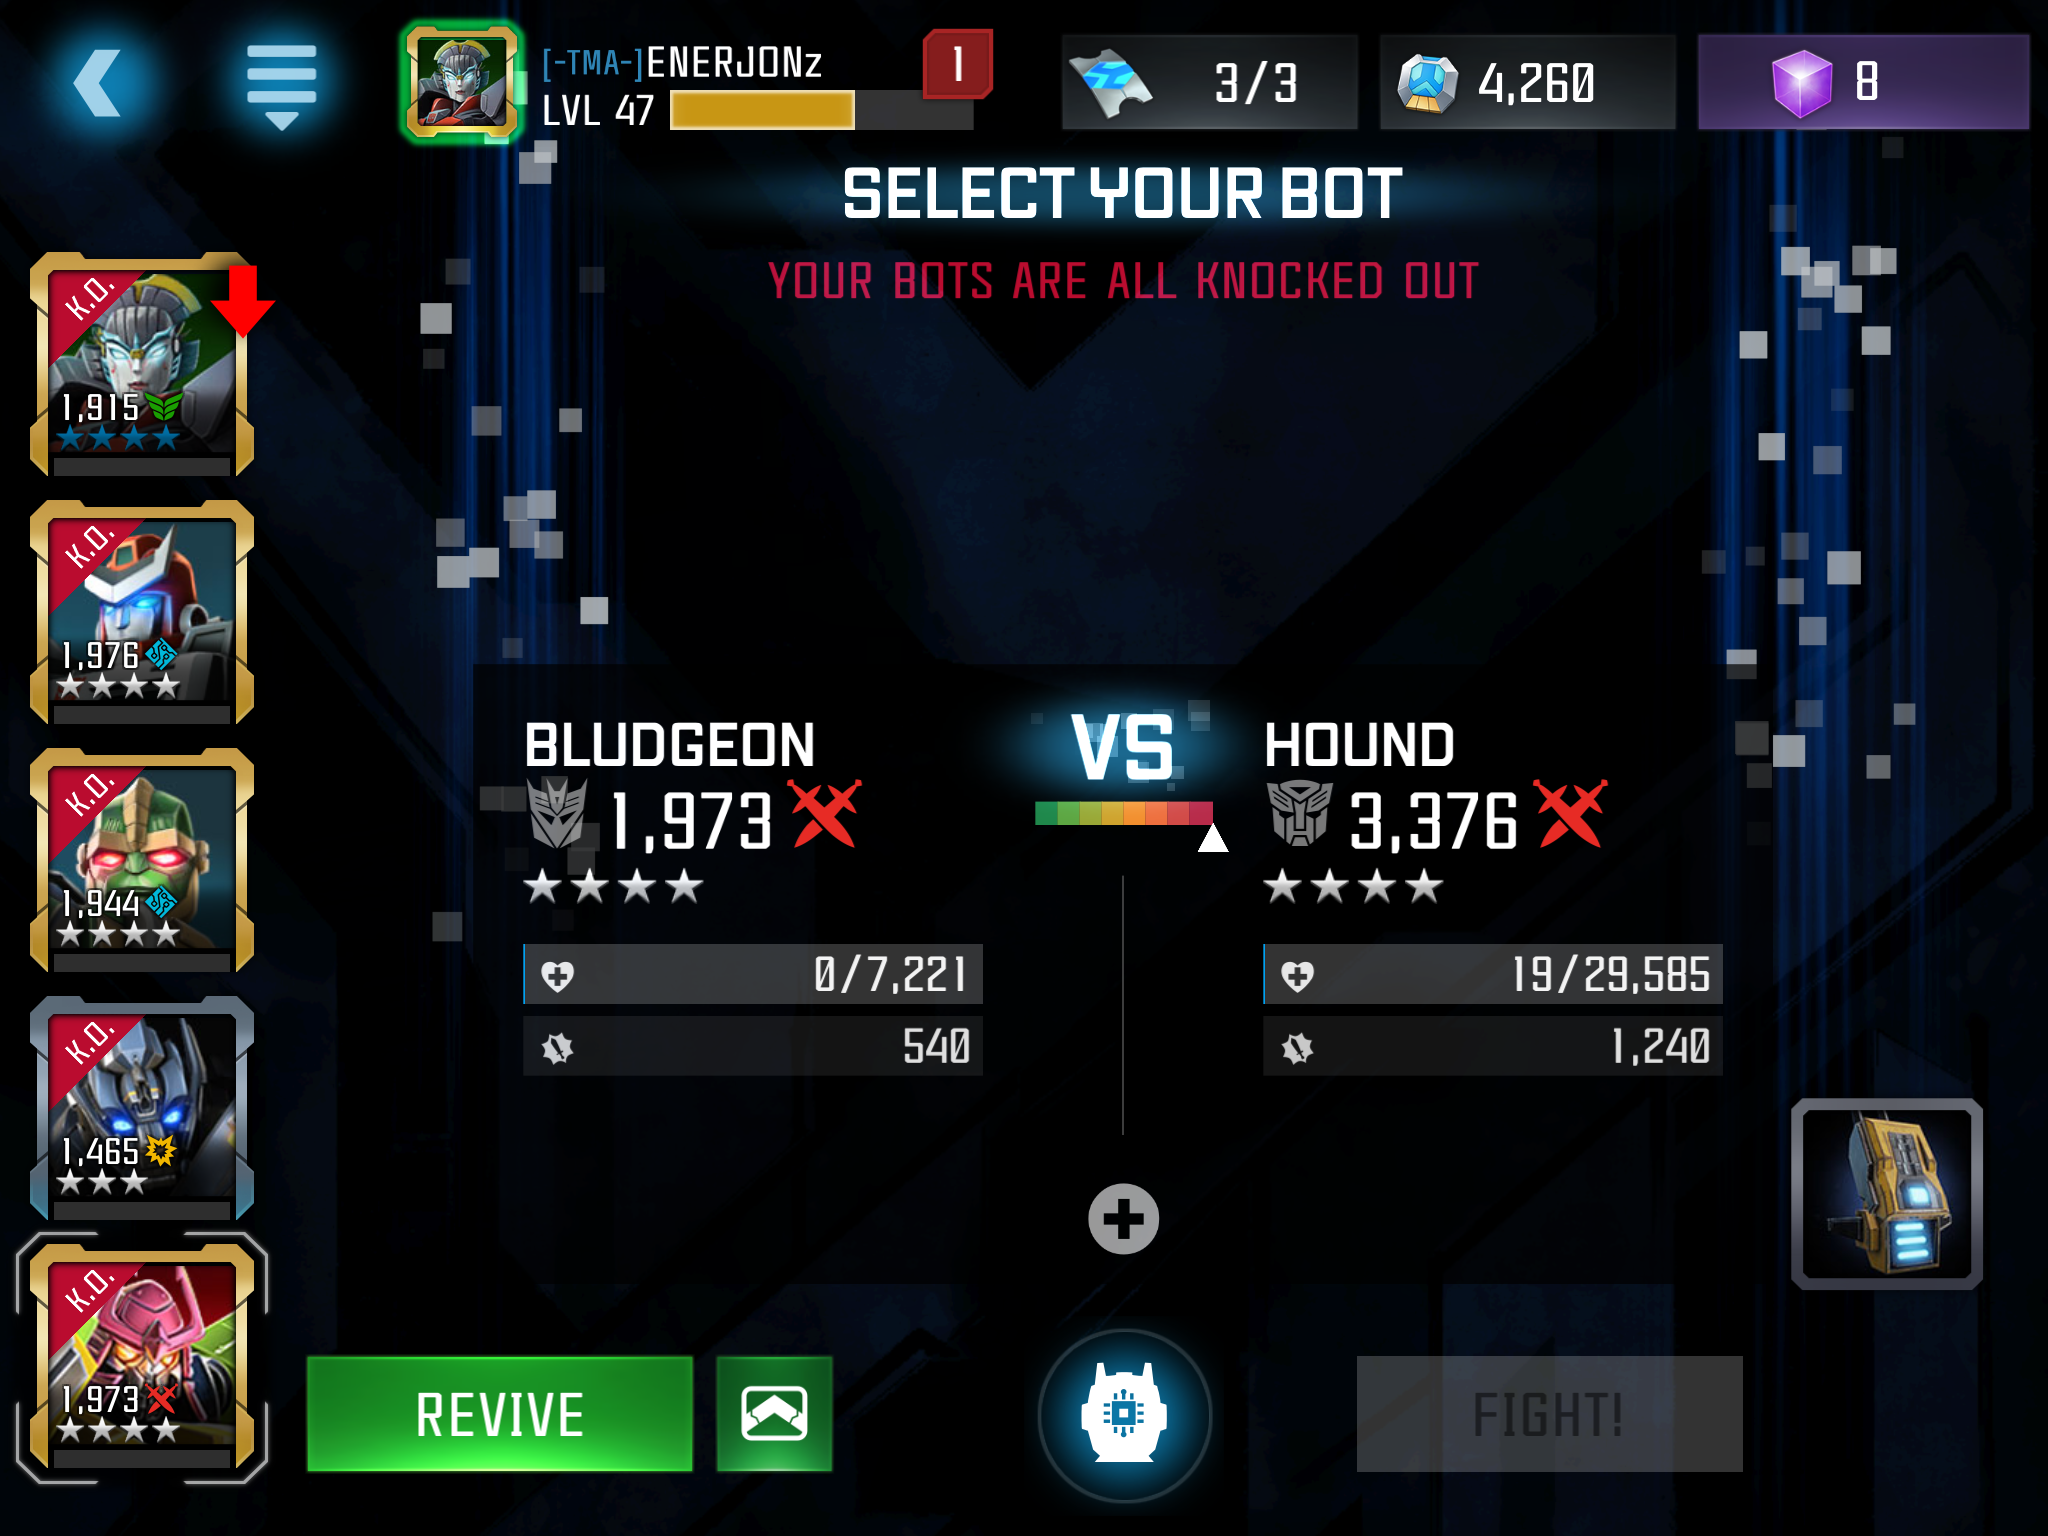 7gq3g9vs0in8.png